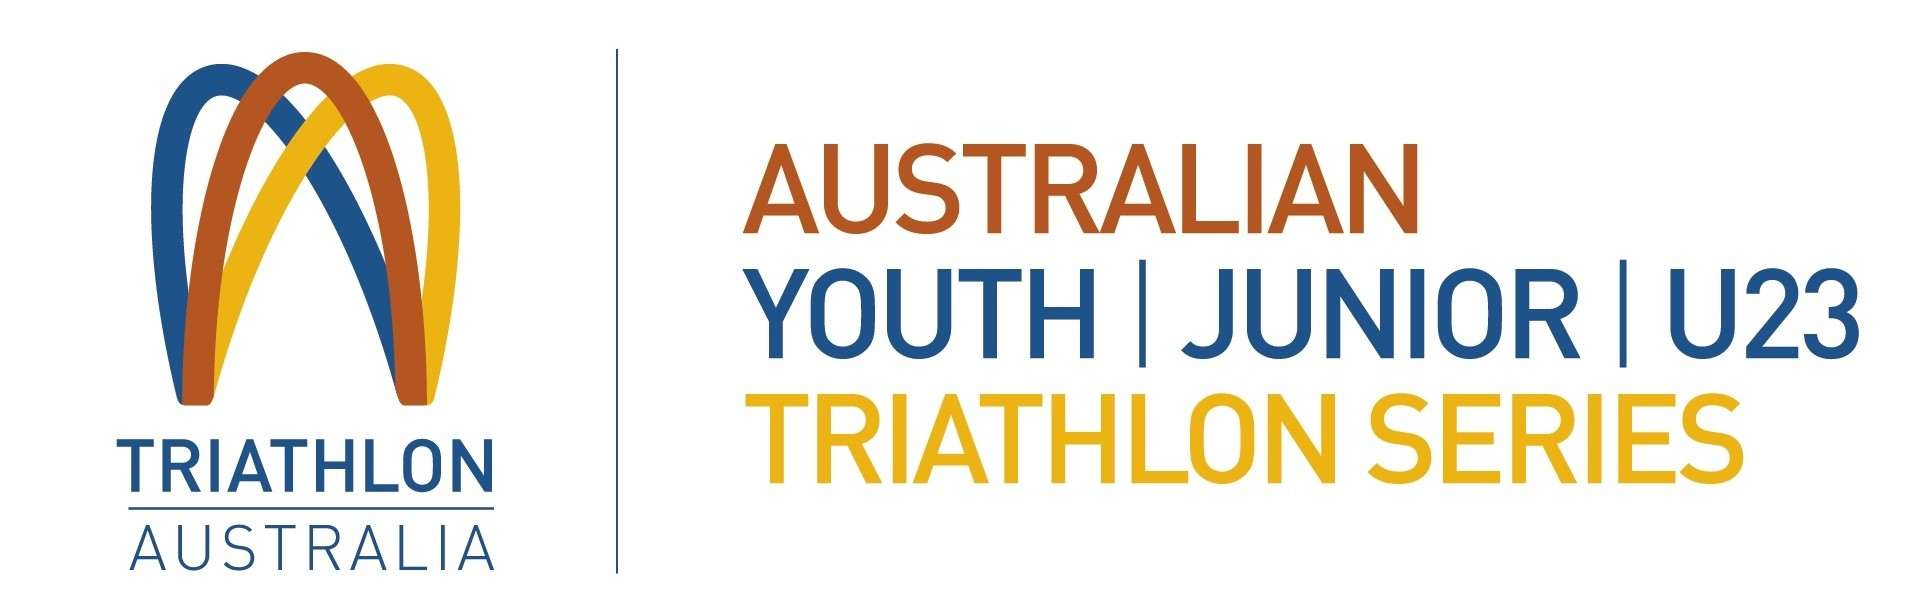 Australian Youth Junior U23 Triathlon Series